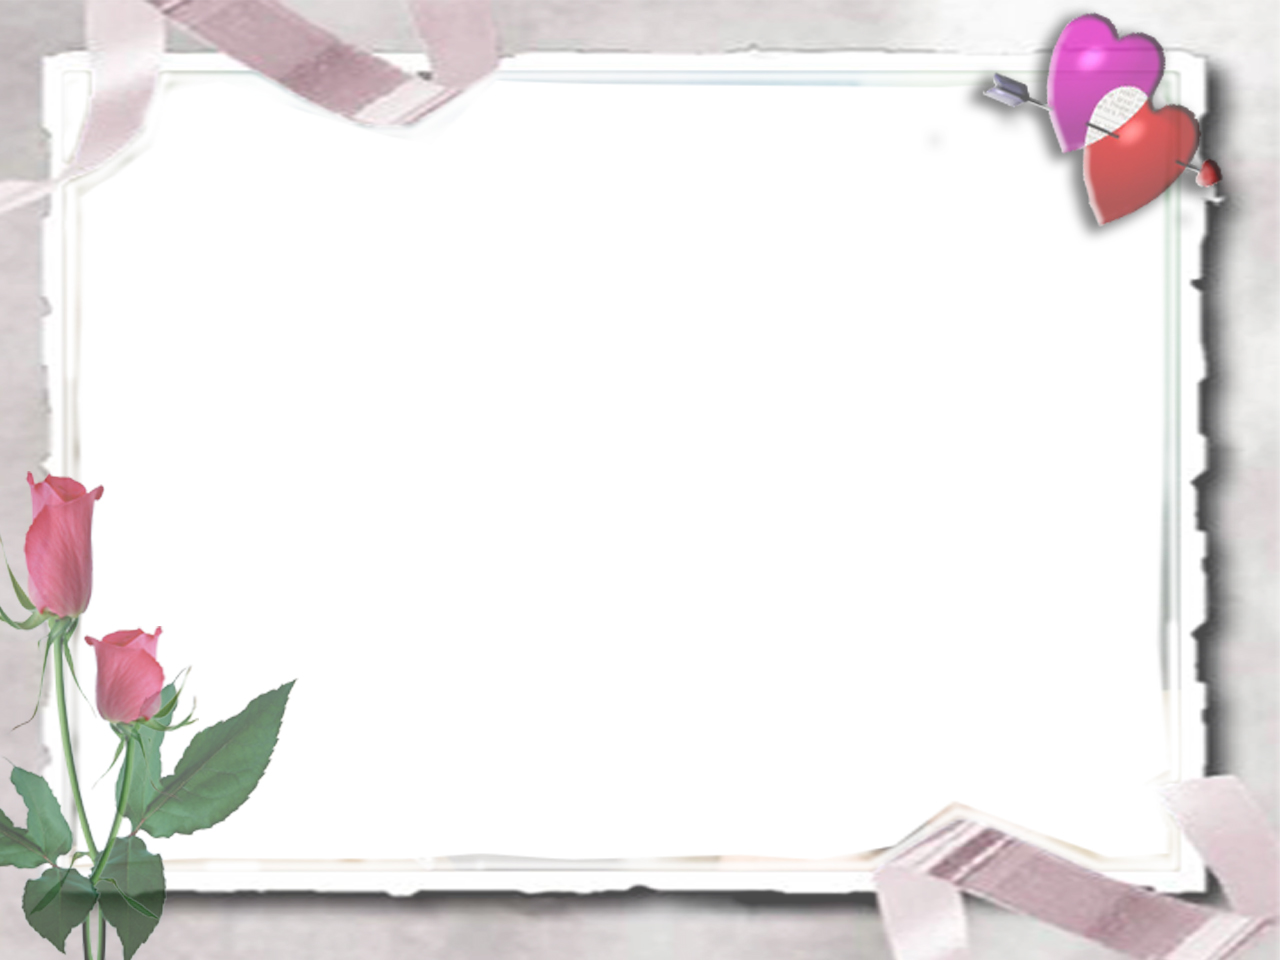 Beauty Frame PSD